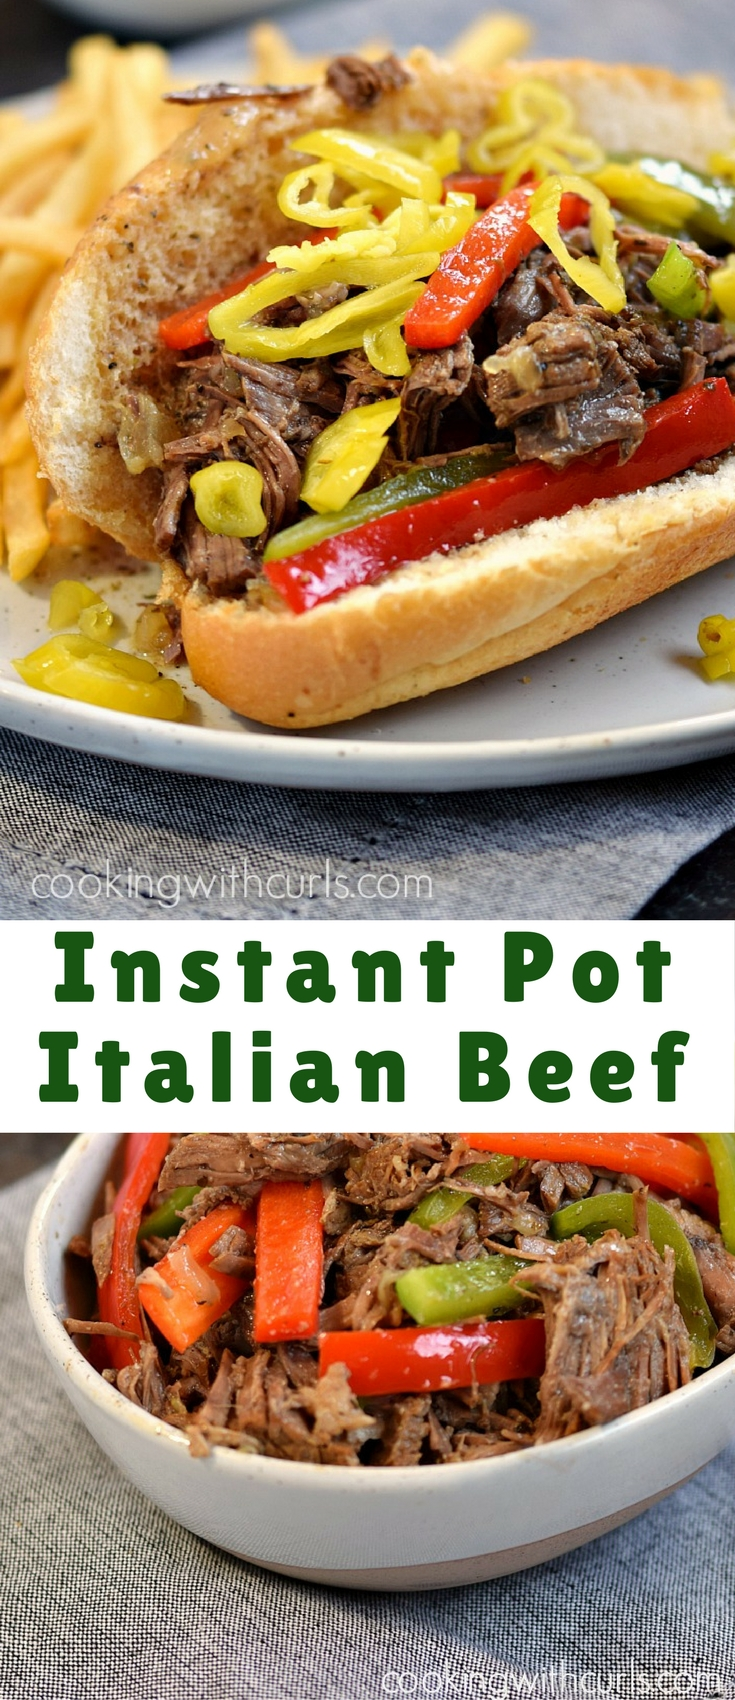 This Instant Pot Italian Beef has all the flavors of the original while remaining Paleo and Whole 30 compliant - minus the Italian roll!